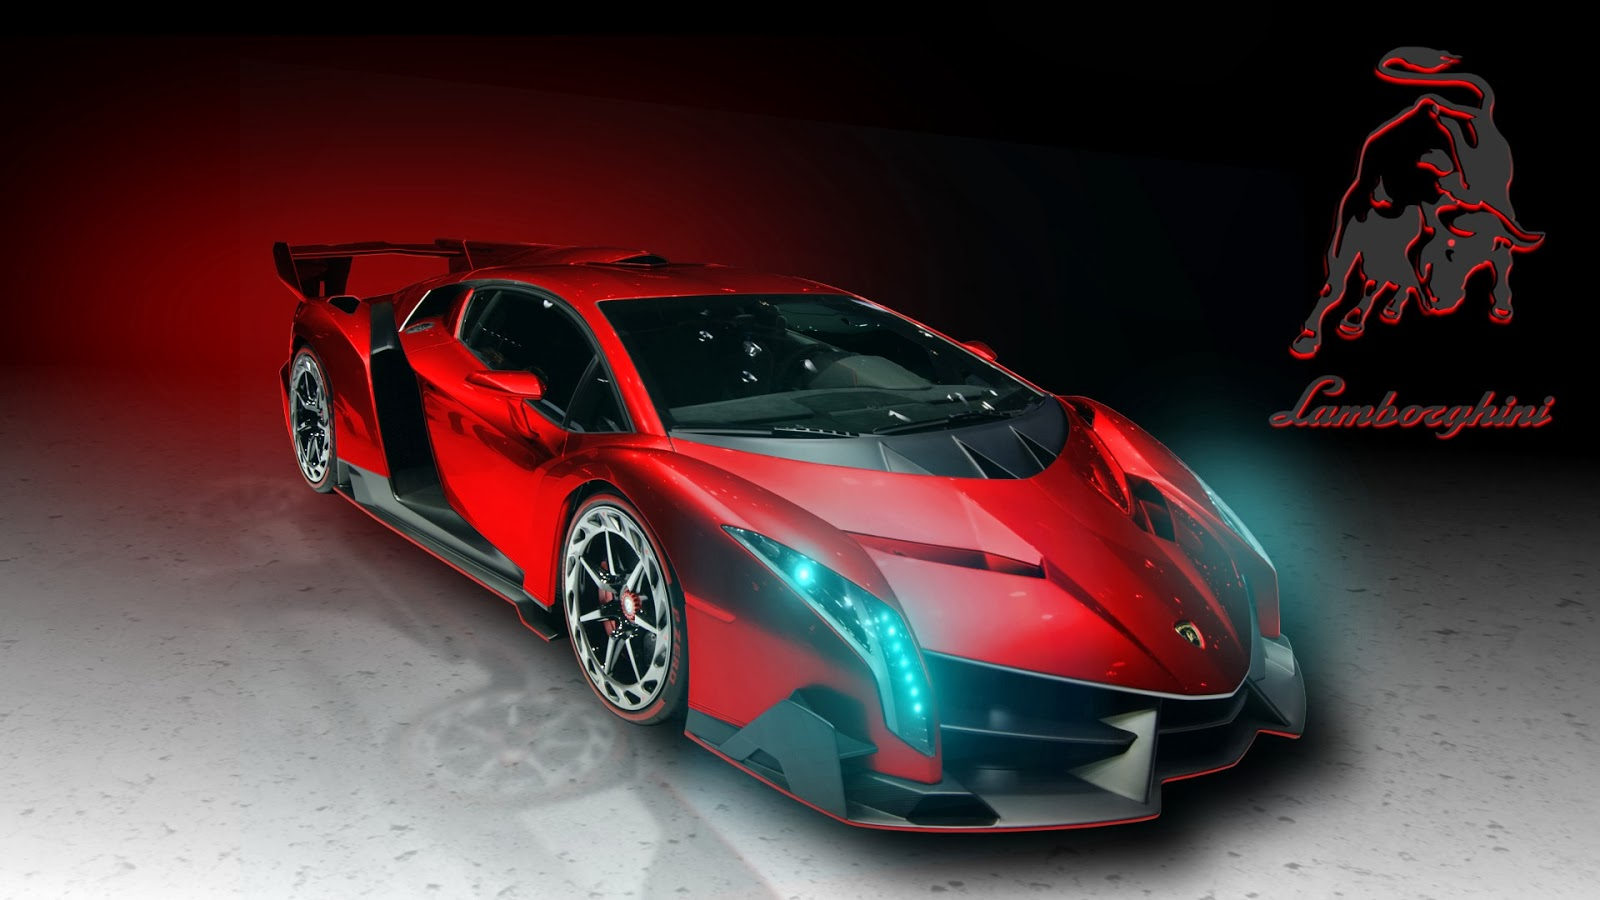 lamborghini beautiful car wide wallpapers | cars wallpaper